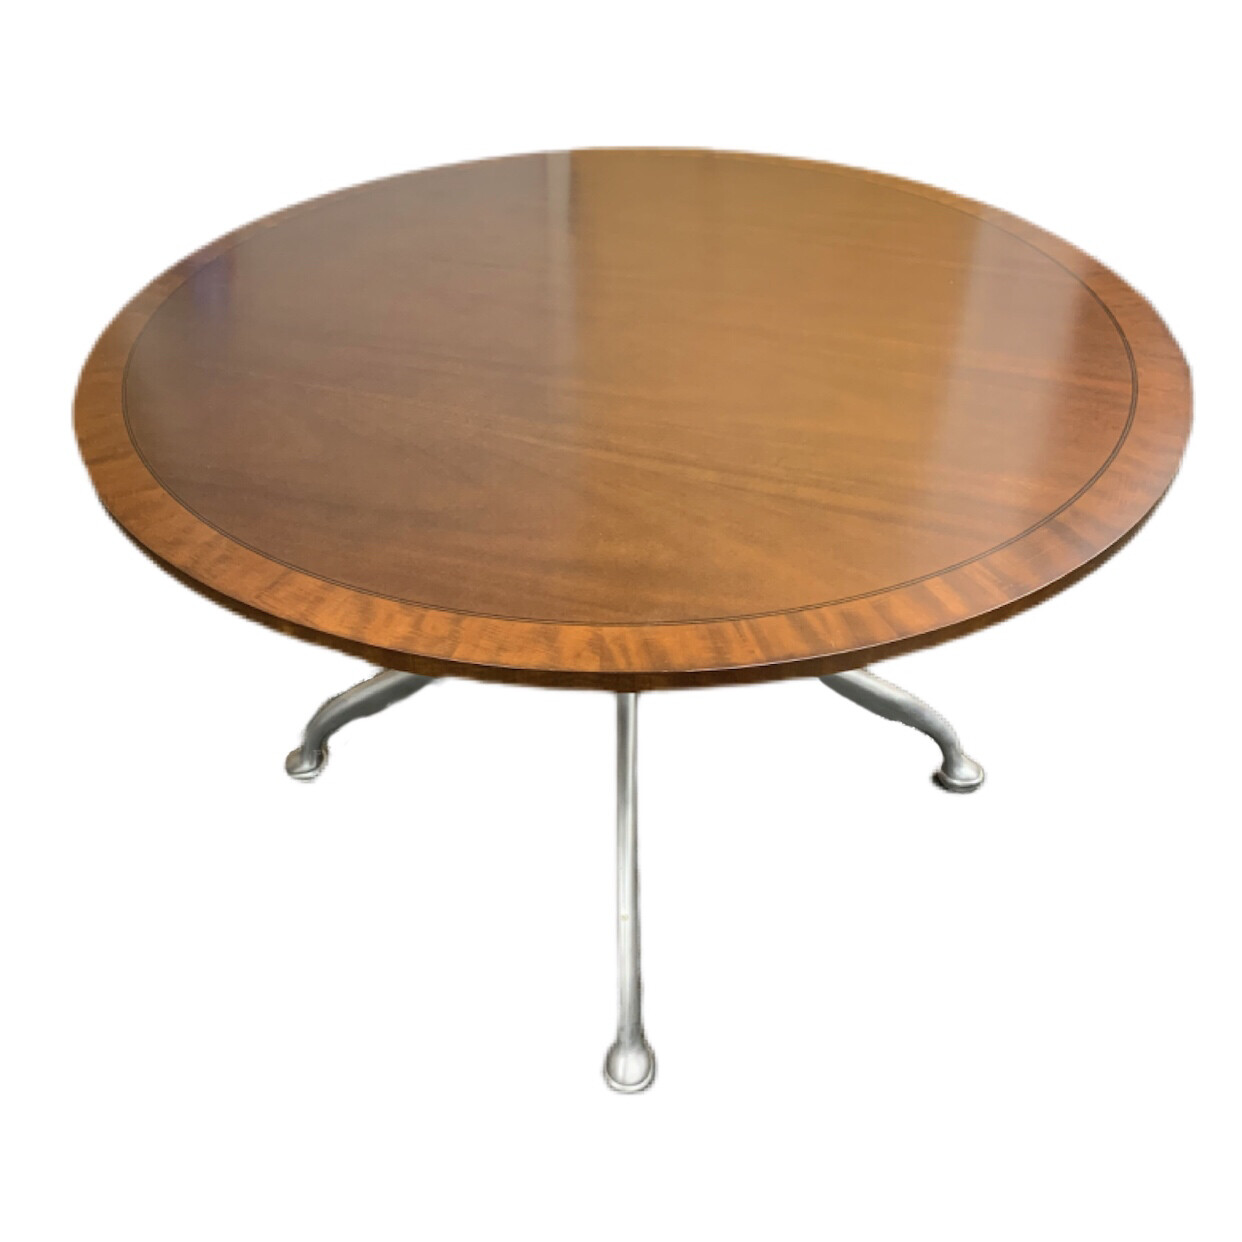 Solid Wood Round Table By Hickory Chair